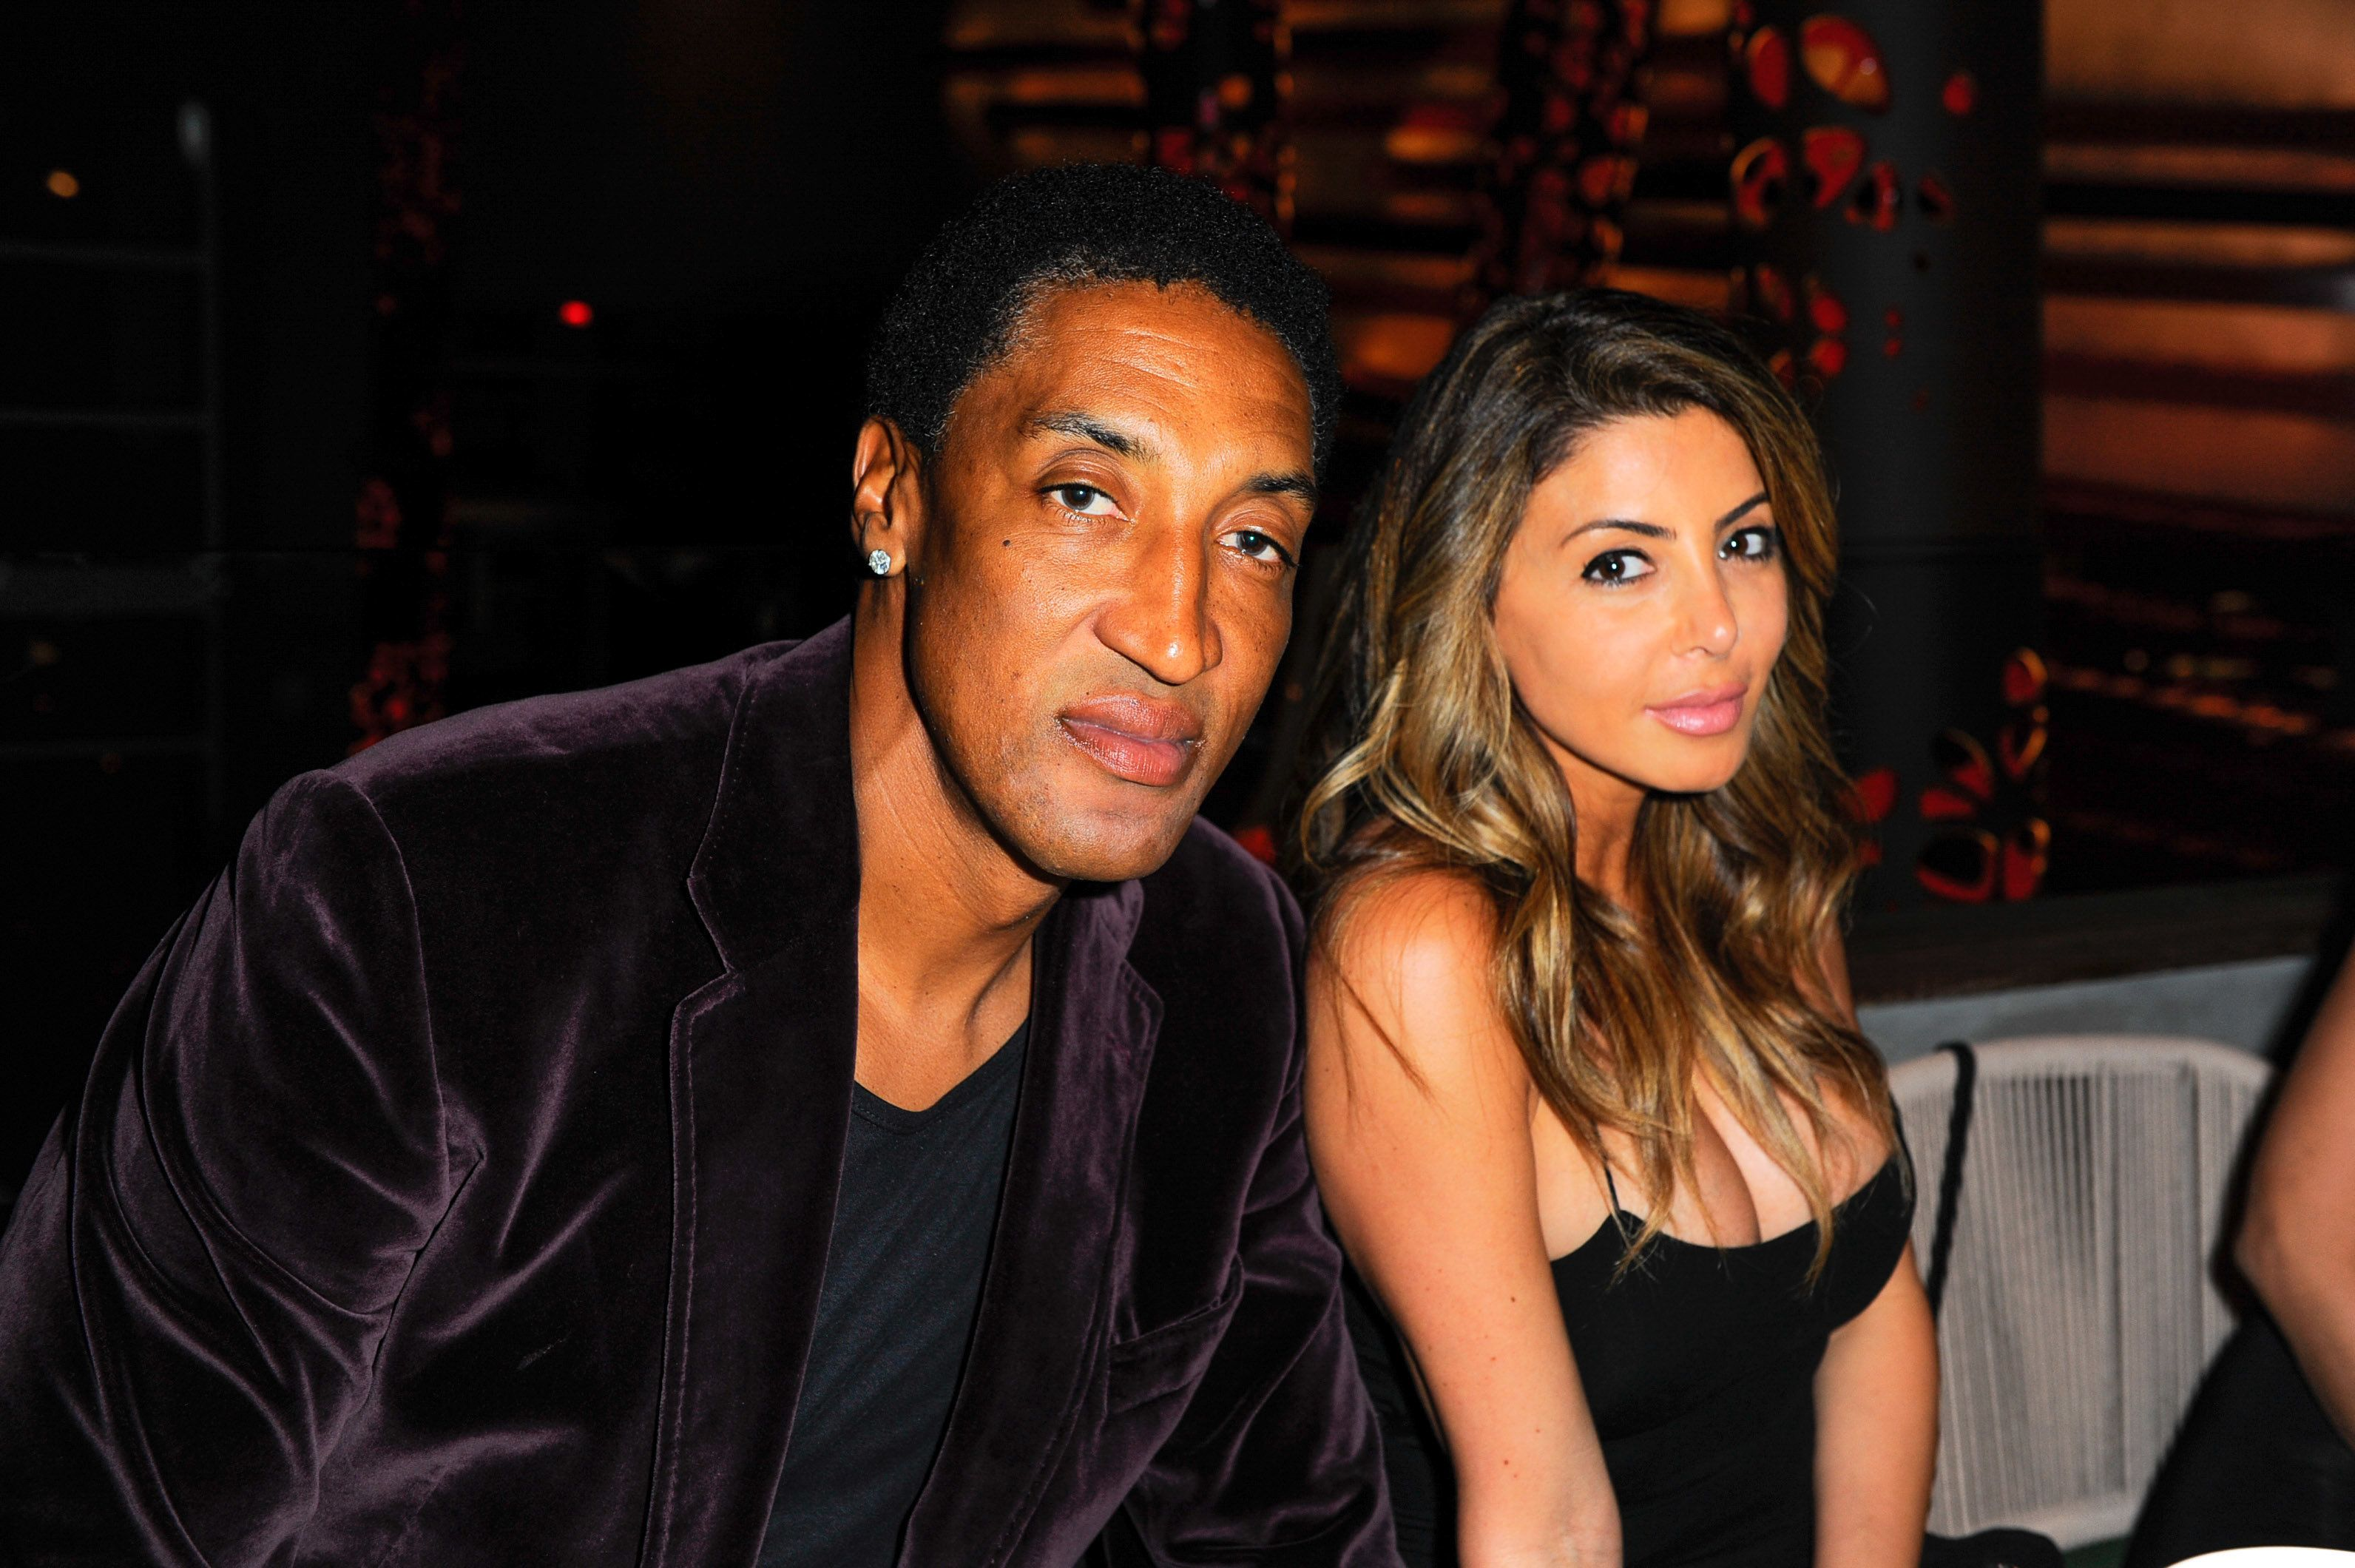 MIAMI, FLORIDA - MARCH 16: Scottie Pippen and Larsa Pippen attend the Avion Reserva 44 Celebrates Kygo's Haute Living Cover at Komodo on March 16, 2016 in Miami, Florida.  (Photo by Sergi Alexander/Getty Images for Haute Living)